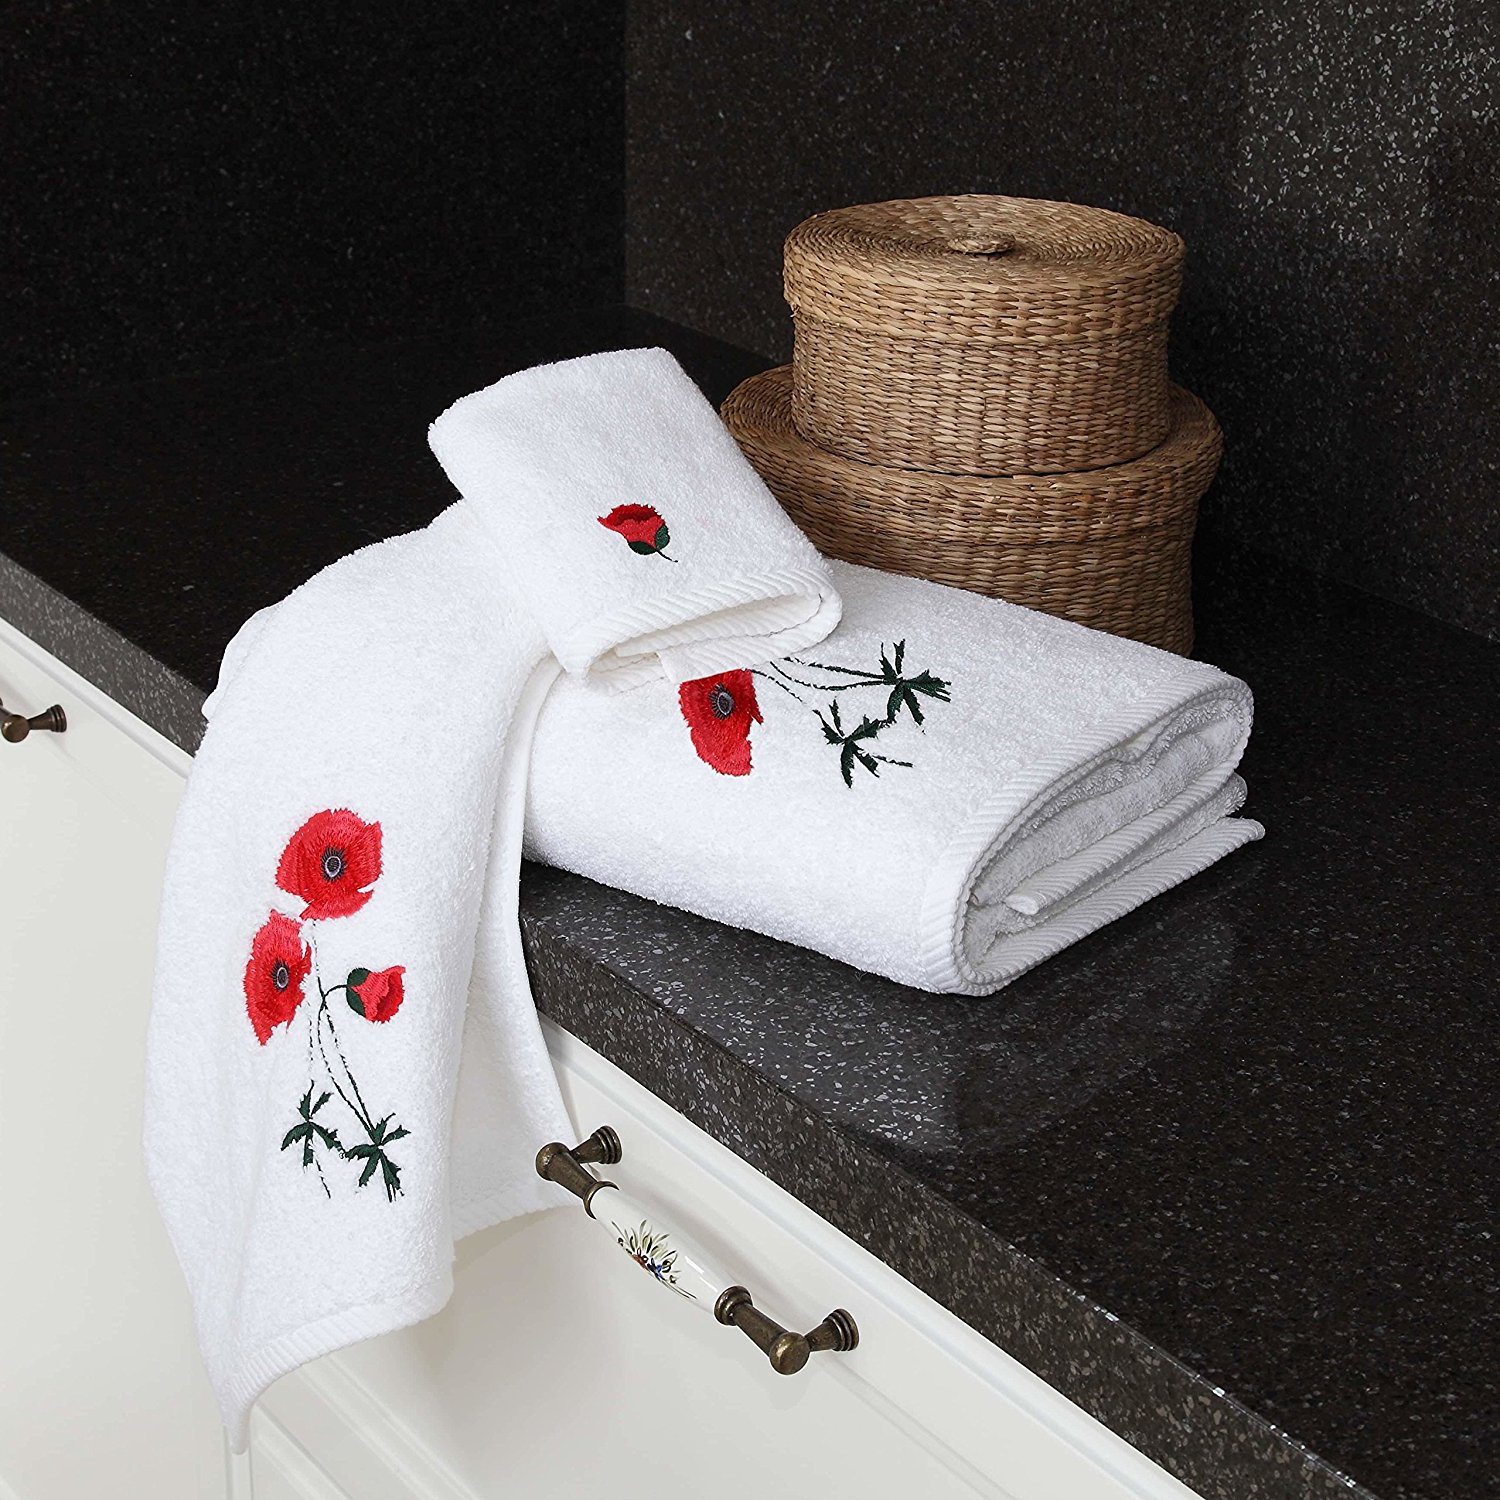 3 Piece Red Embroidered Poppy Flowers Towel Set With 27 X 54 Inches Bath Towel, Light Red Floral White Solid Color Twist Weave Natural Dobby Weave Border Double Stitched Edge Towels, Turkish Cotton